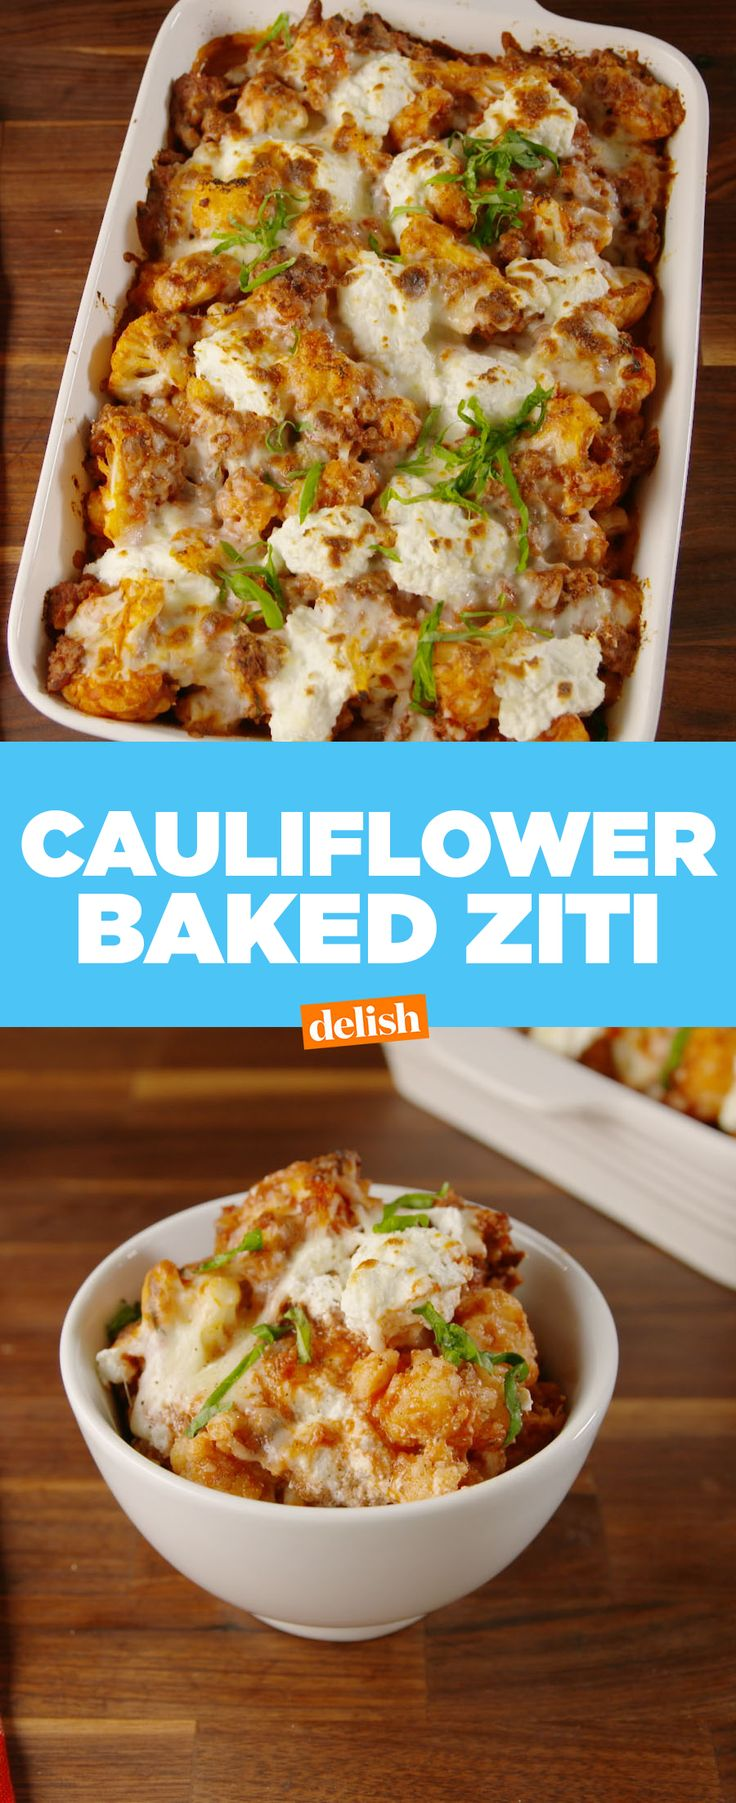 Cauliflower Baked Ziti is so good you won't even miss the pasta. Get the recipe at Delish.com.